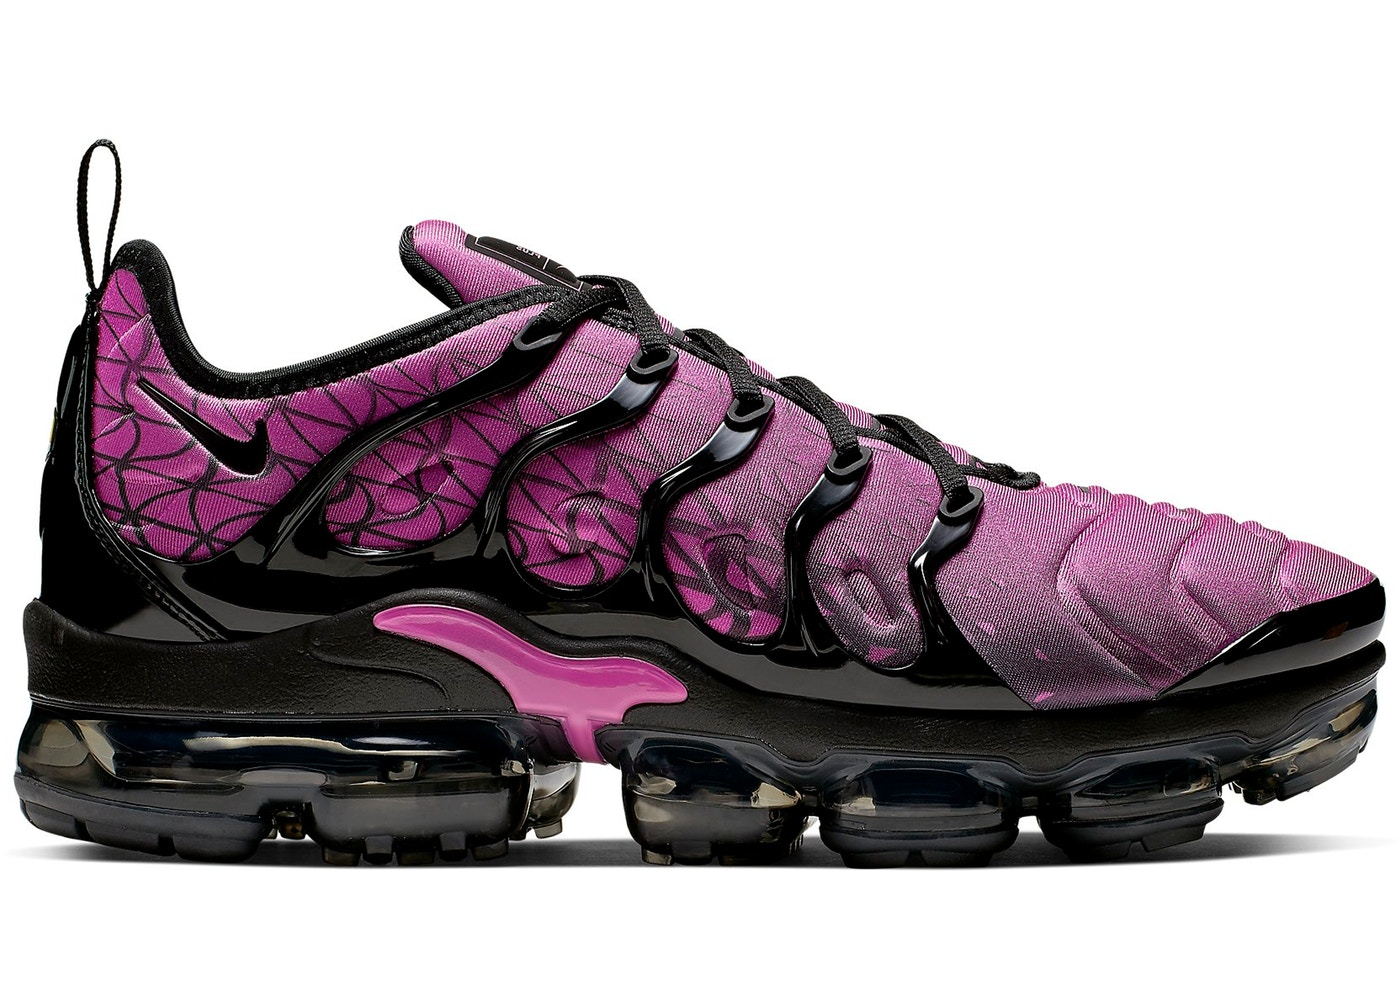 78abbc2f148 Nike Air Max VaporMax Shoes - Release Date